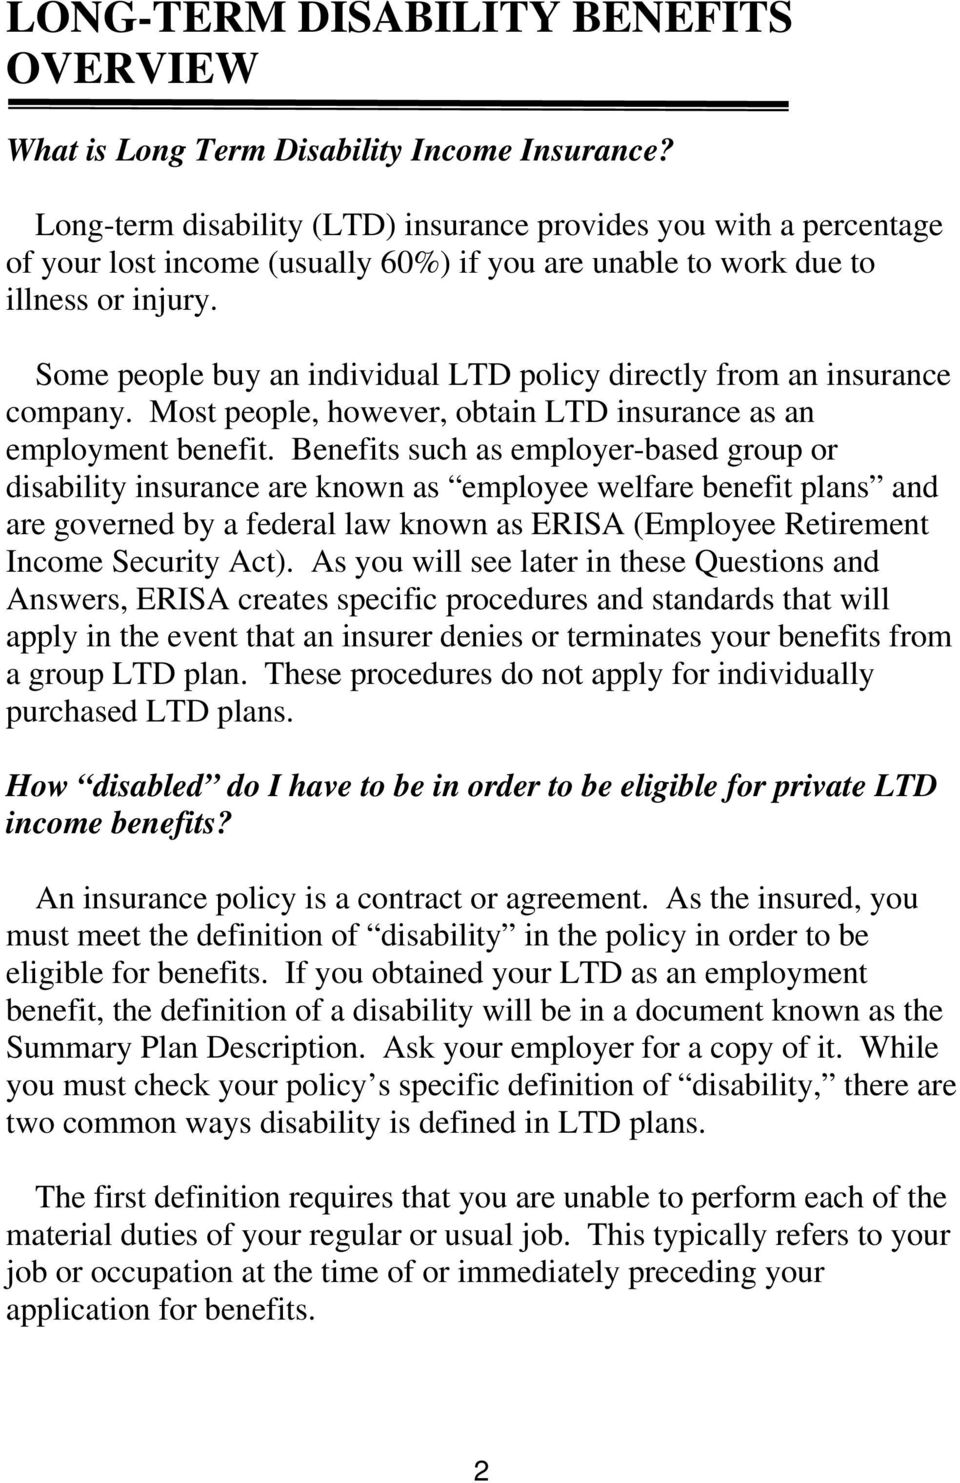 Some people buy an individual LTD policy directly from an insurance company. Most people, however, obtain LTD insurance as an employment benefit.